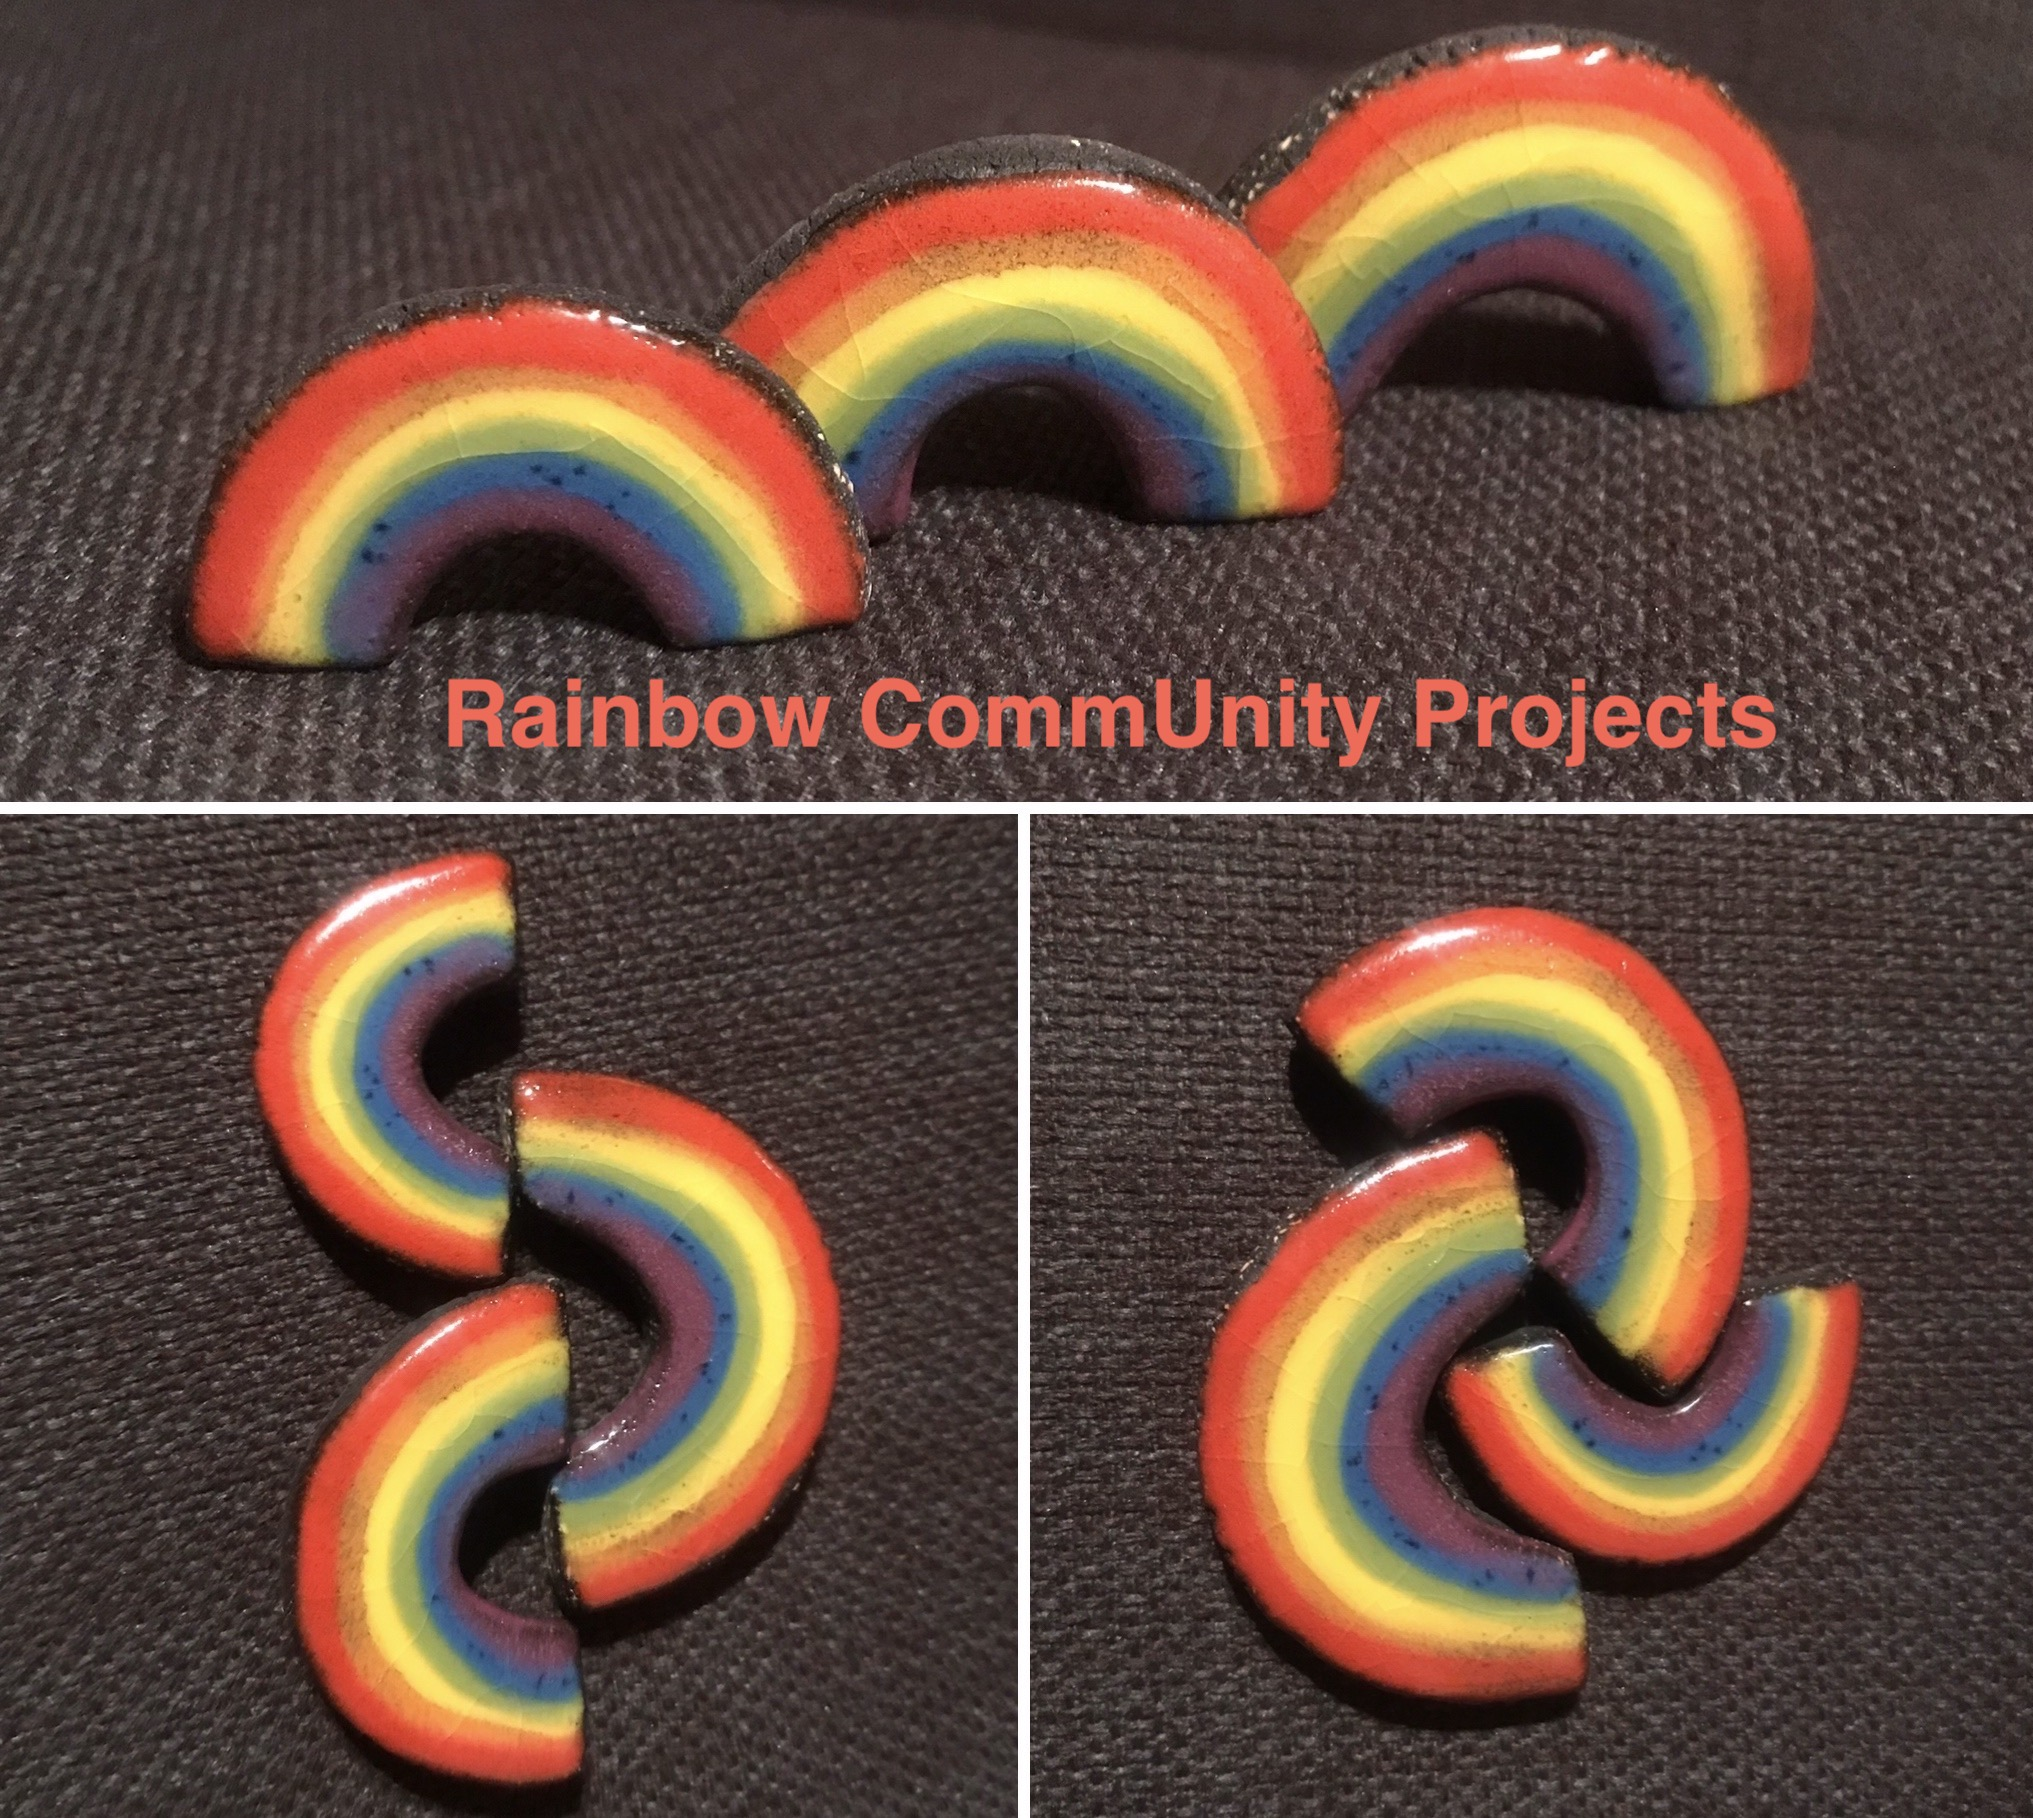 Rainbow CommUnity Projects